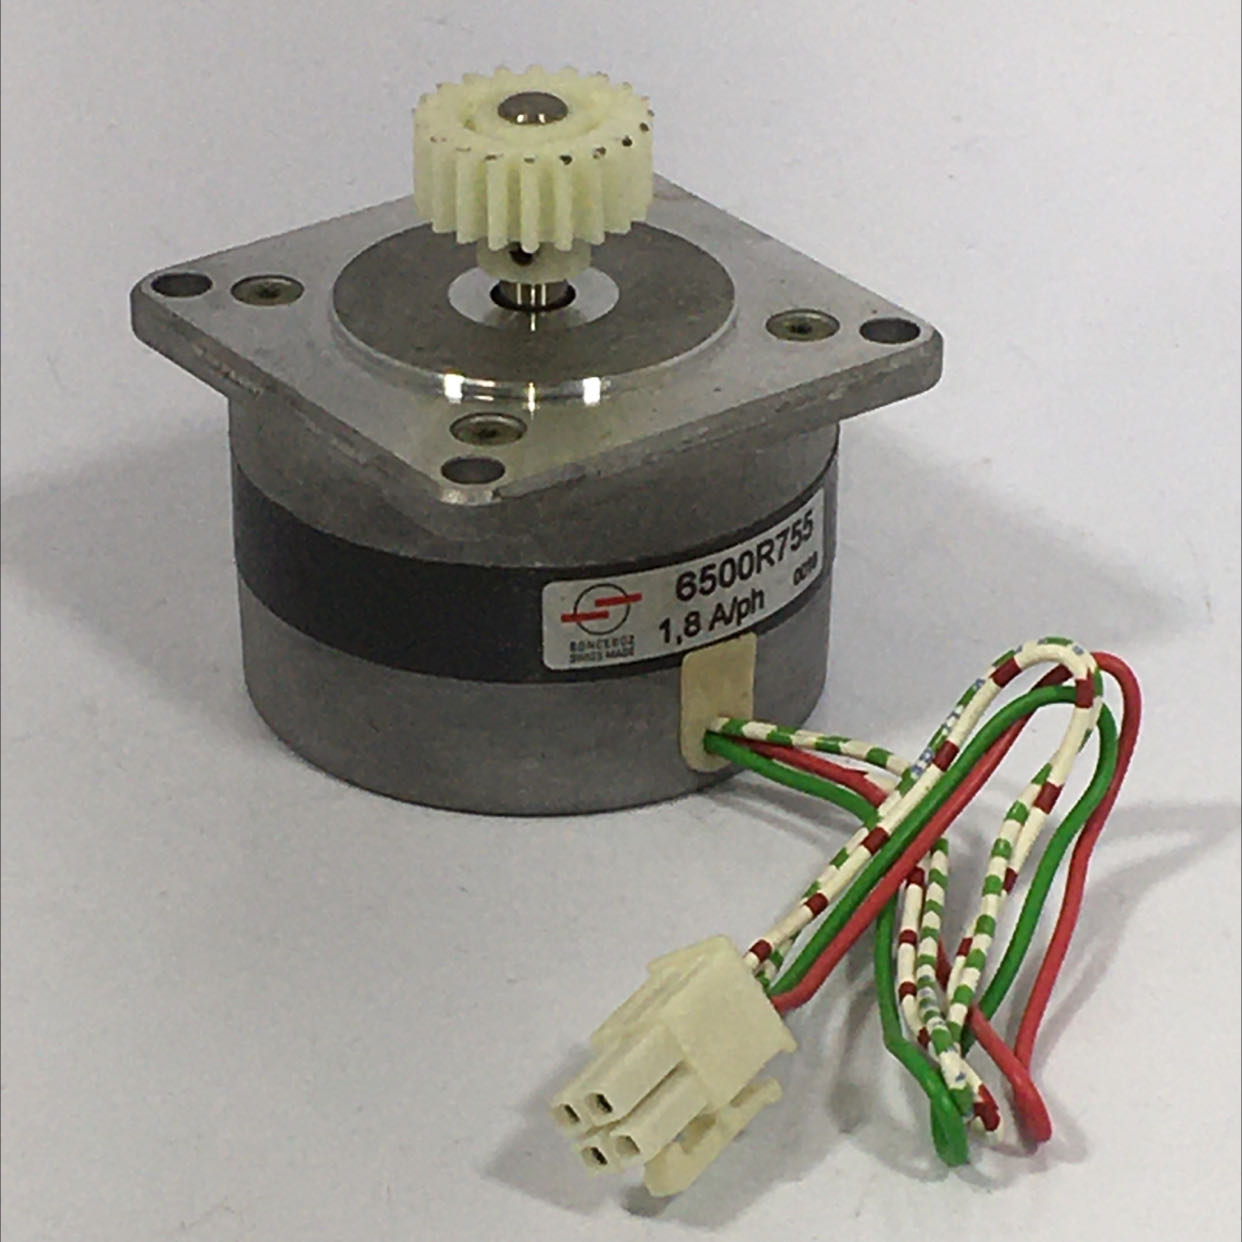 Sonceboz Electric 6500R755 Stepper Motor